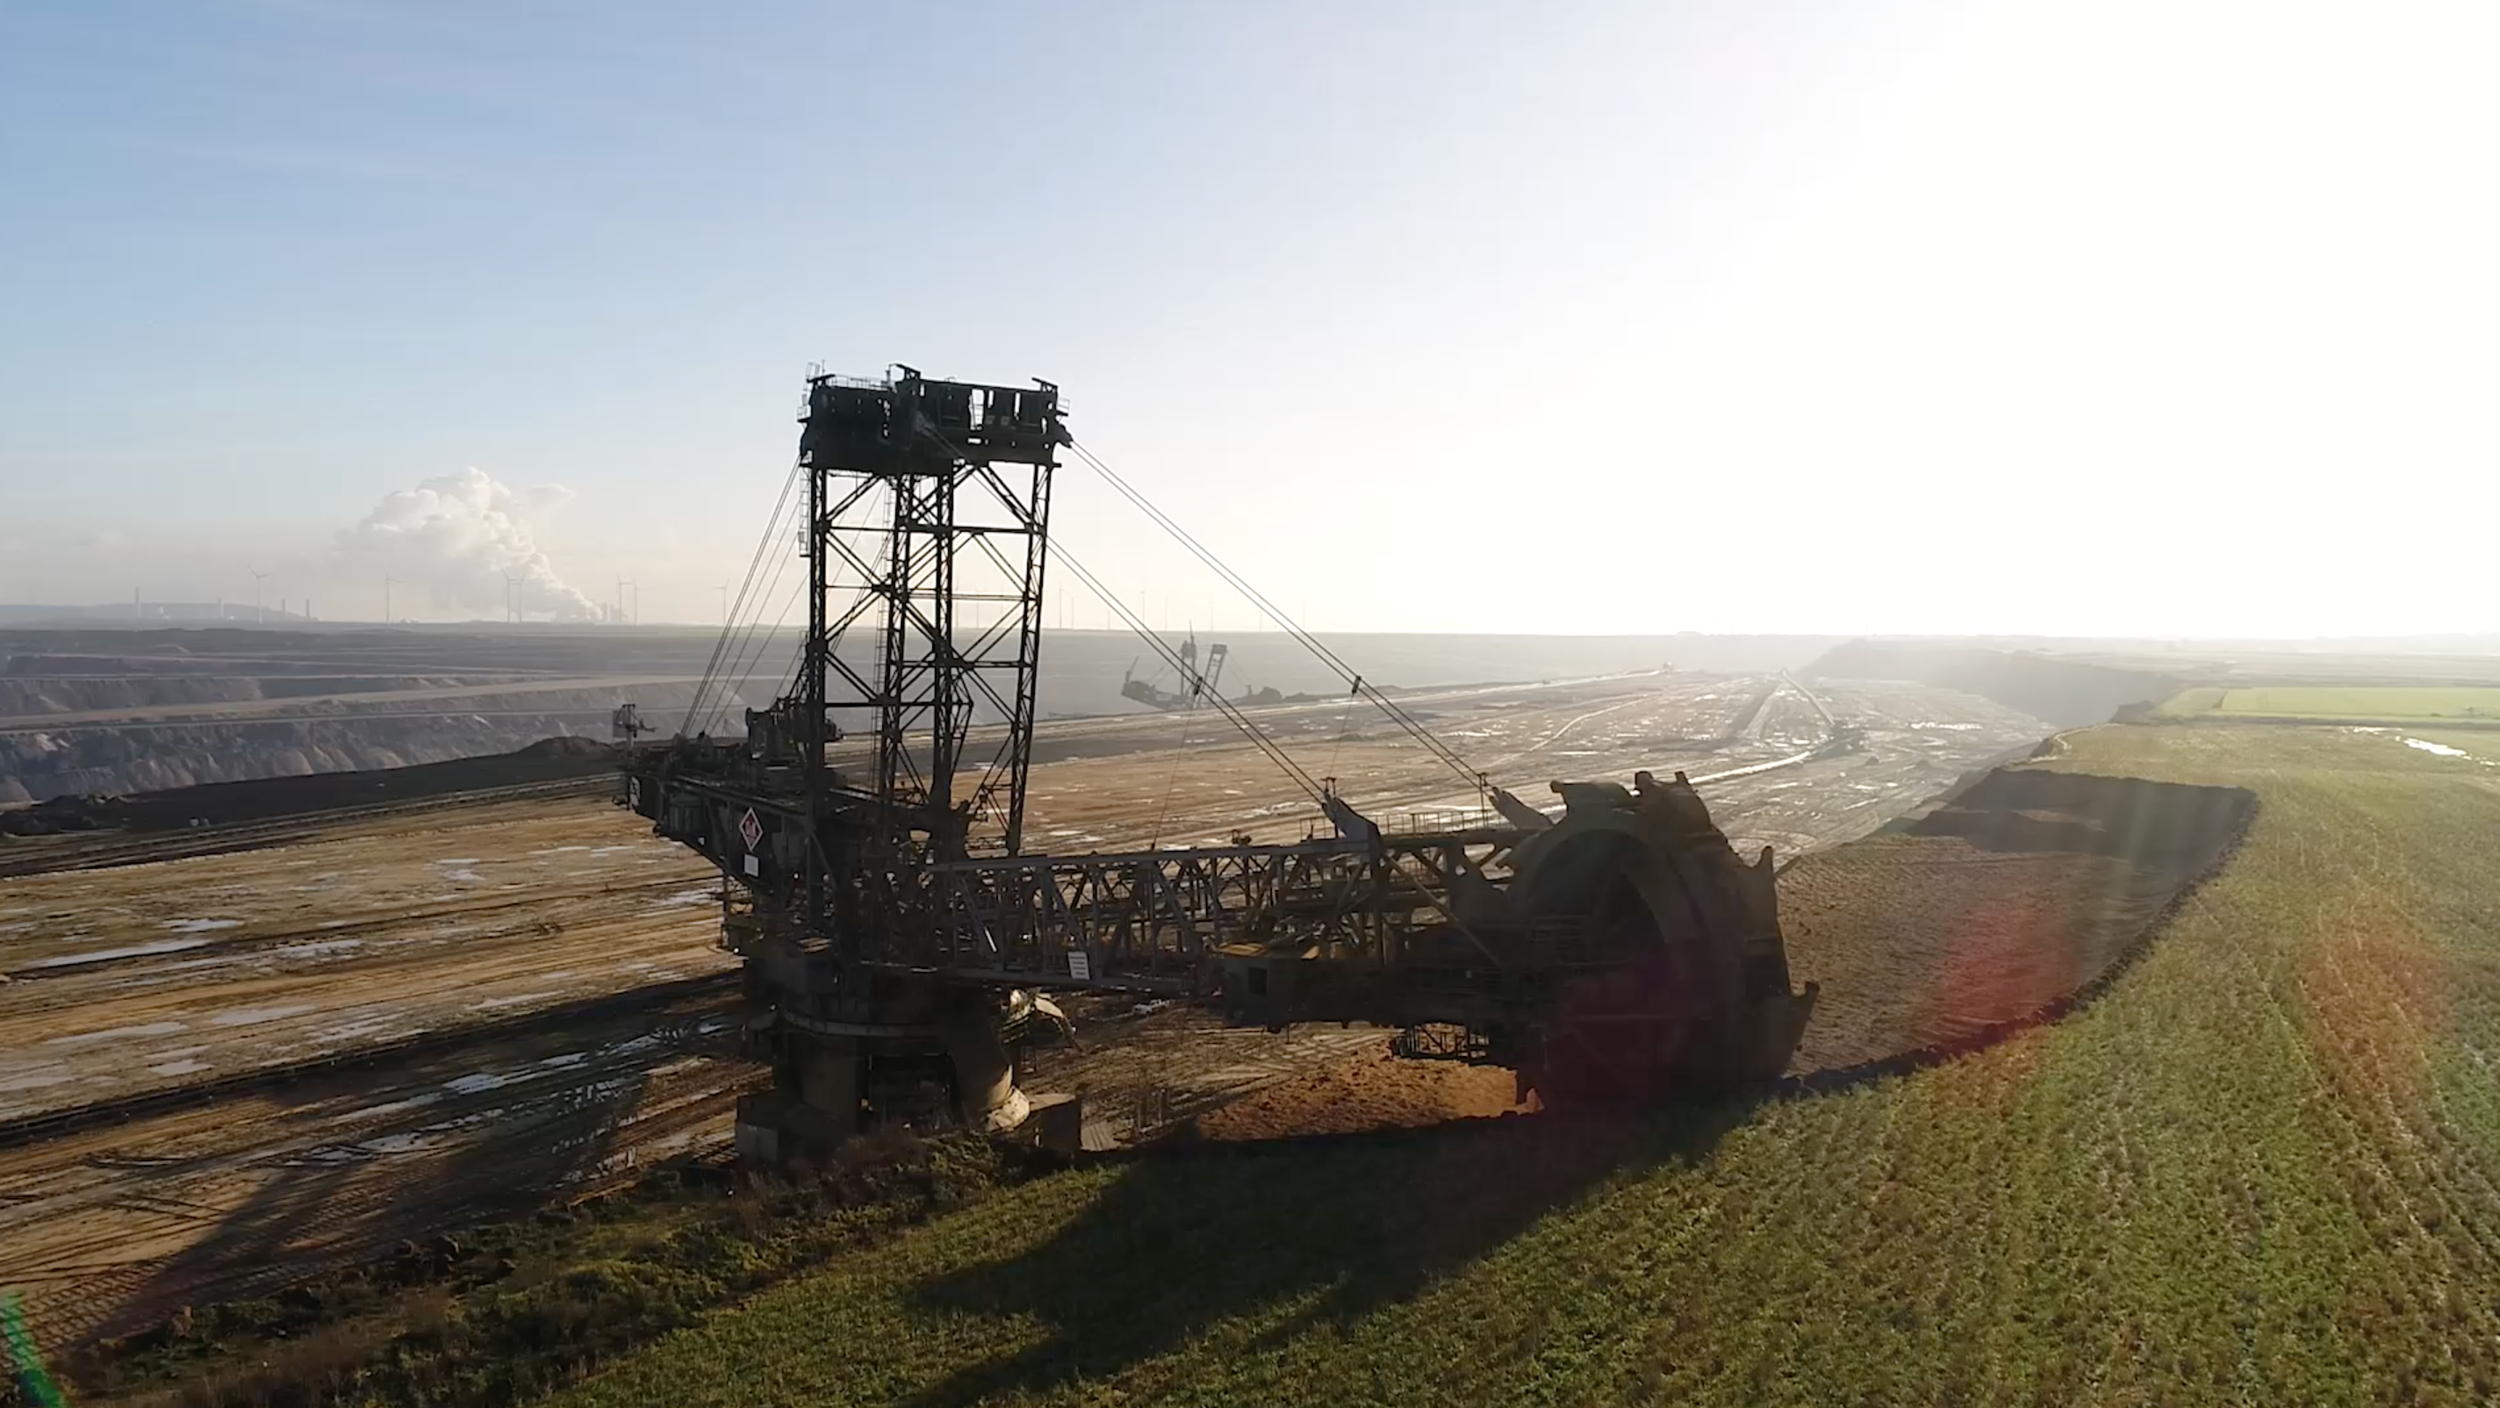 An RWE, the energy company mining brown coal, digger at work.